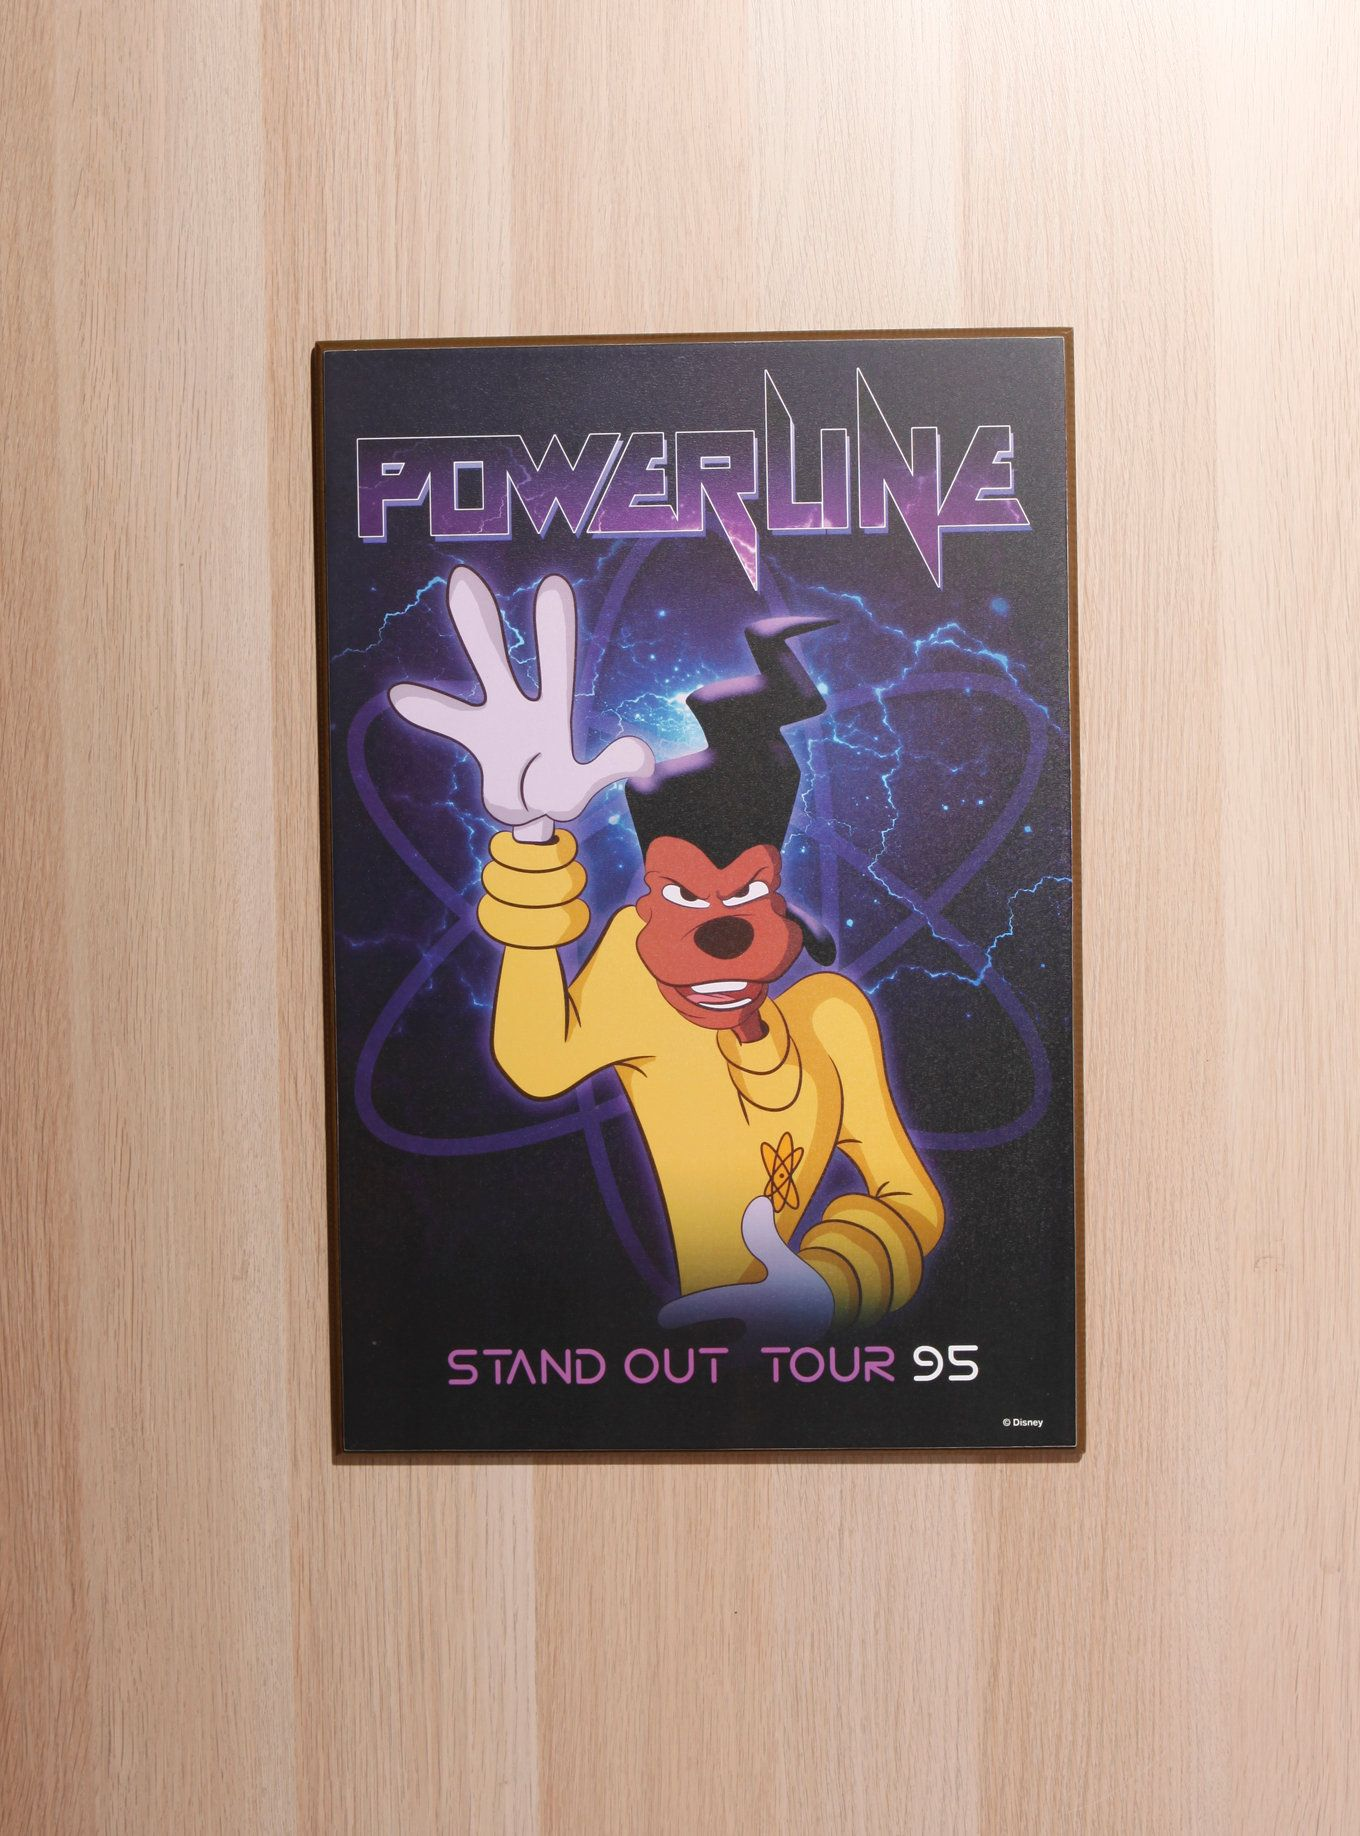 0827ff3054 Wood wall art from Disney s A Goofy Movie with a Powerline poster style  design that reads